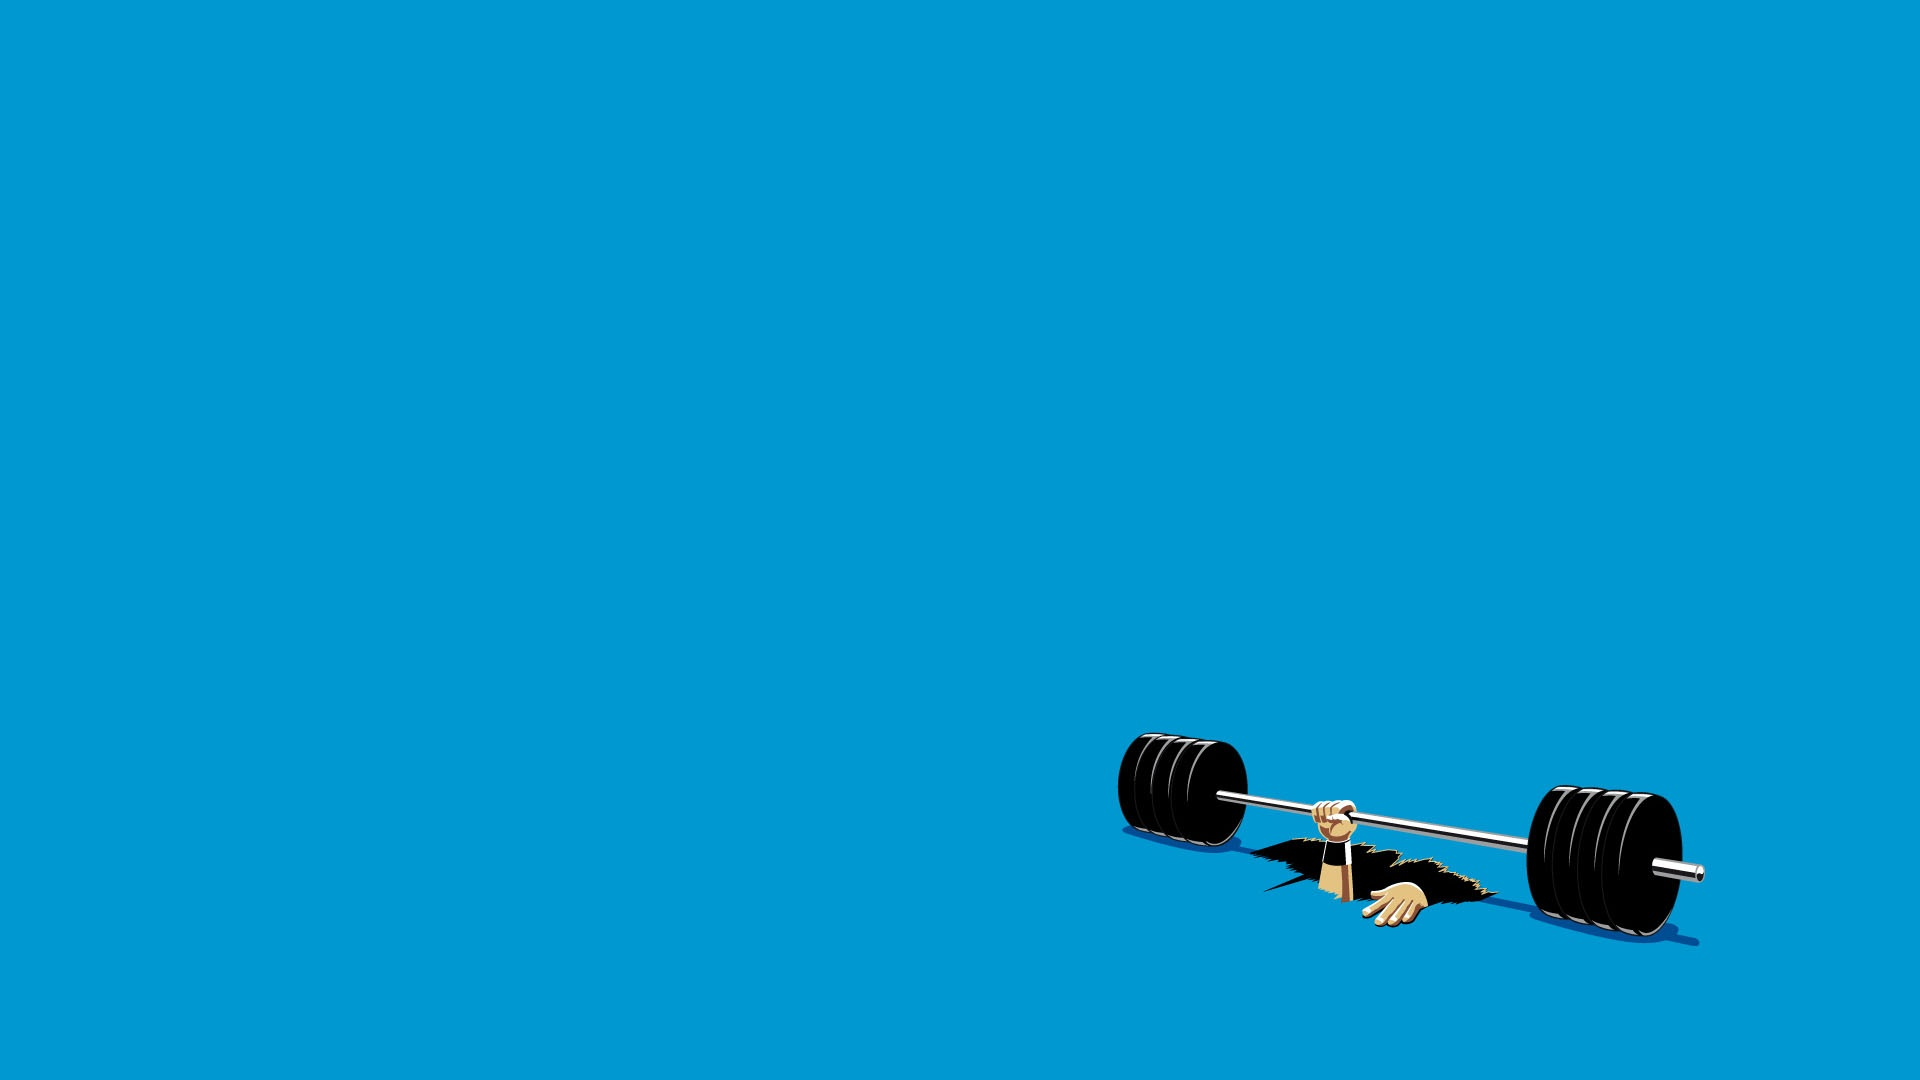 Weightlifting Wallpaper Submited Images 1920x1080